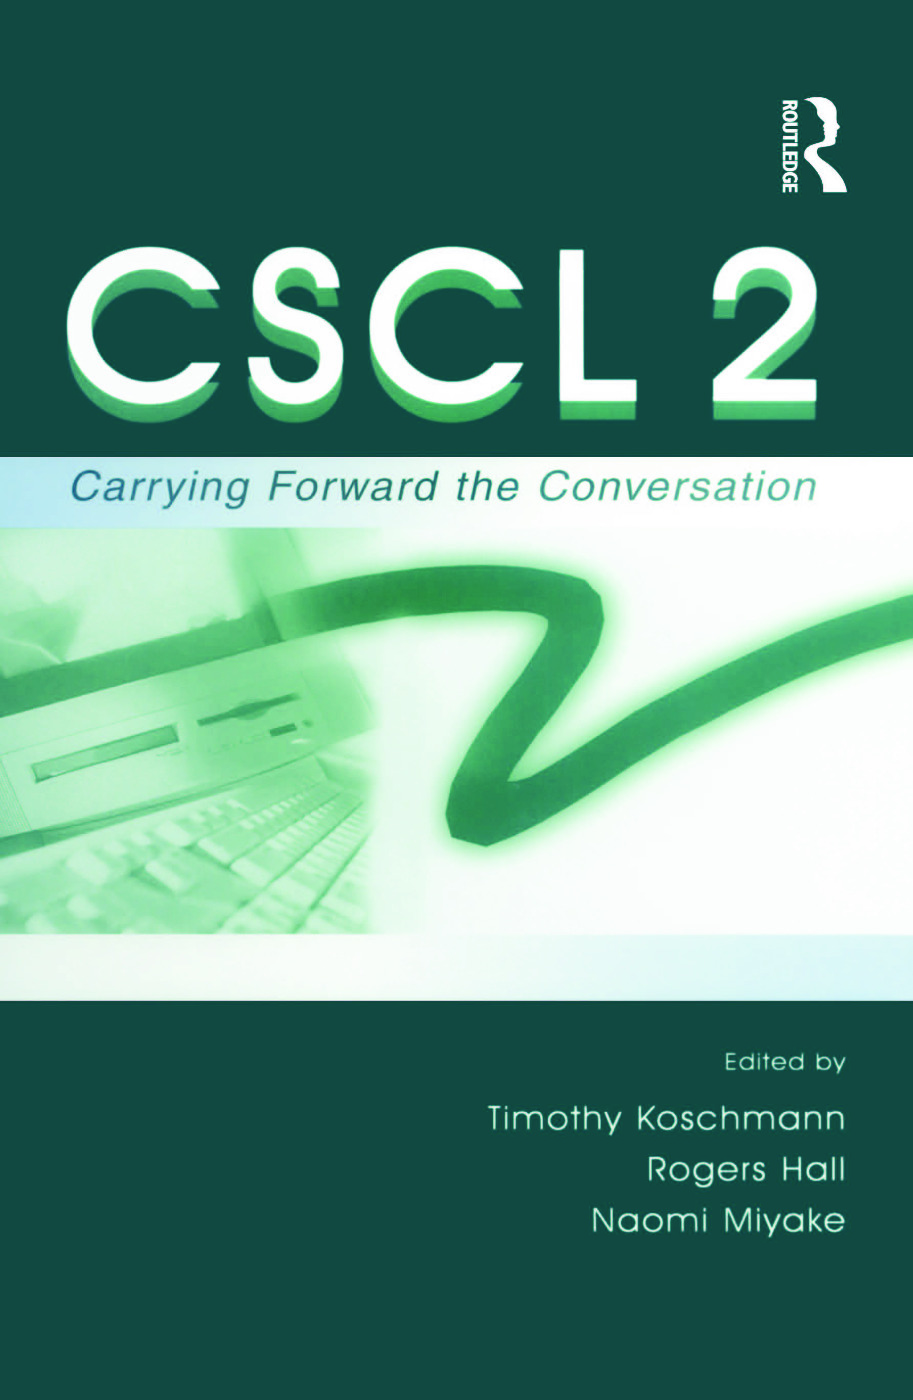 Cscl 2: Carrying Forward the Conversation (Paperback) book cover